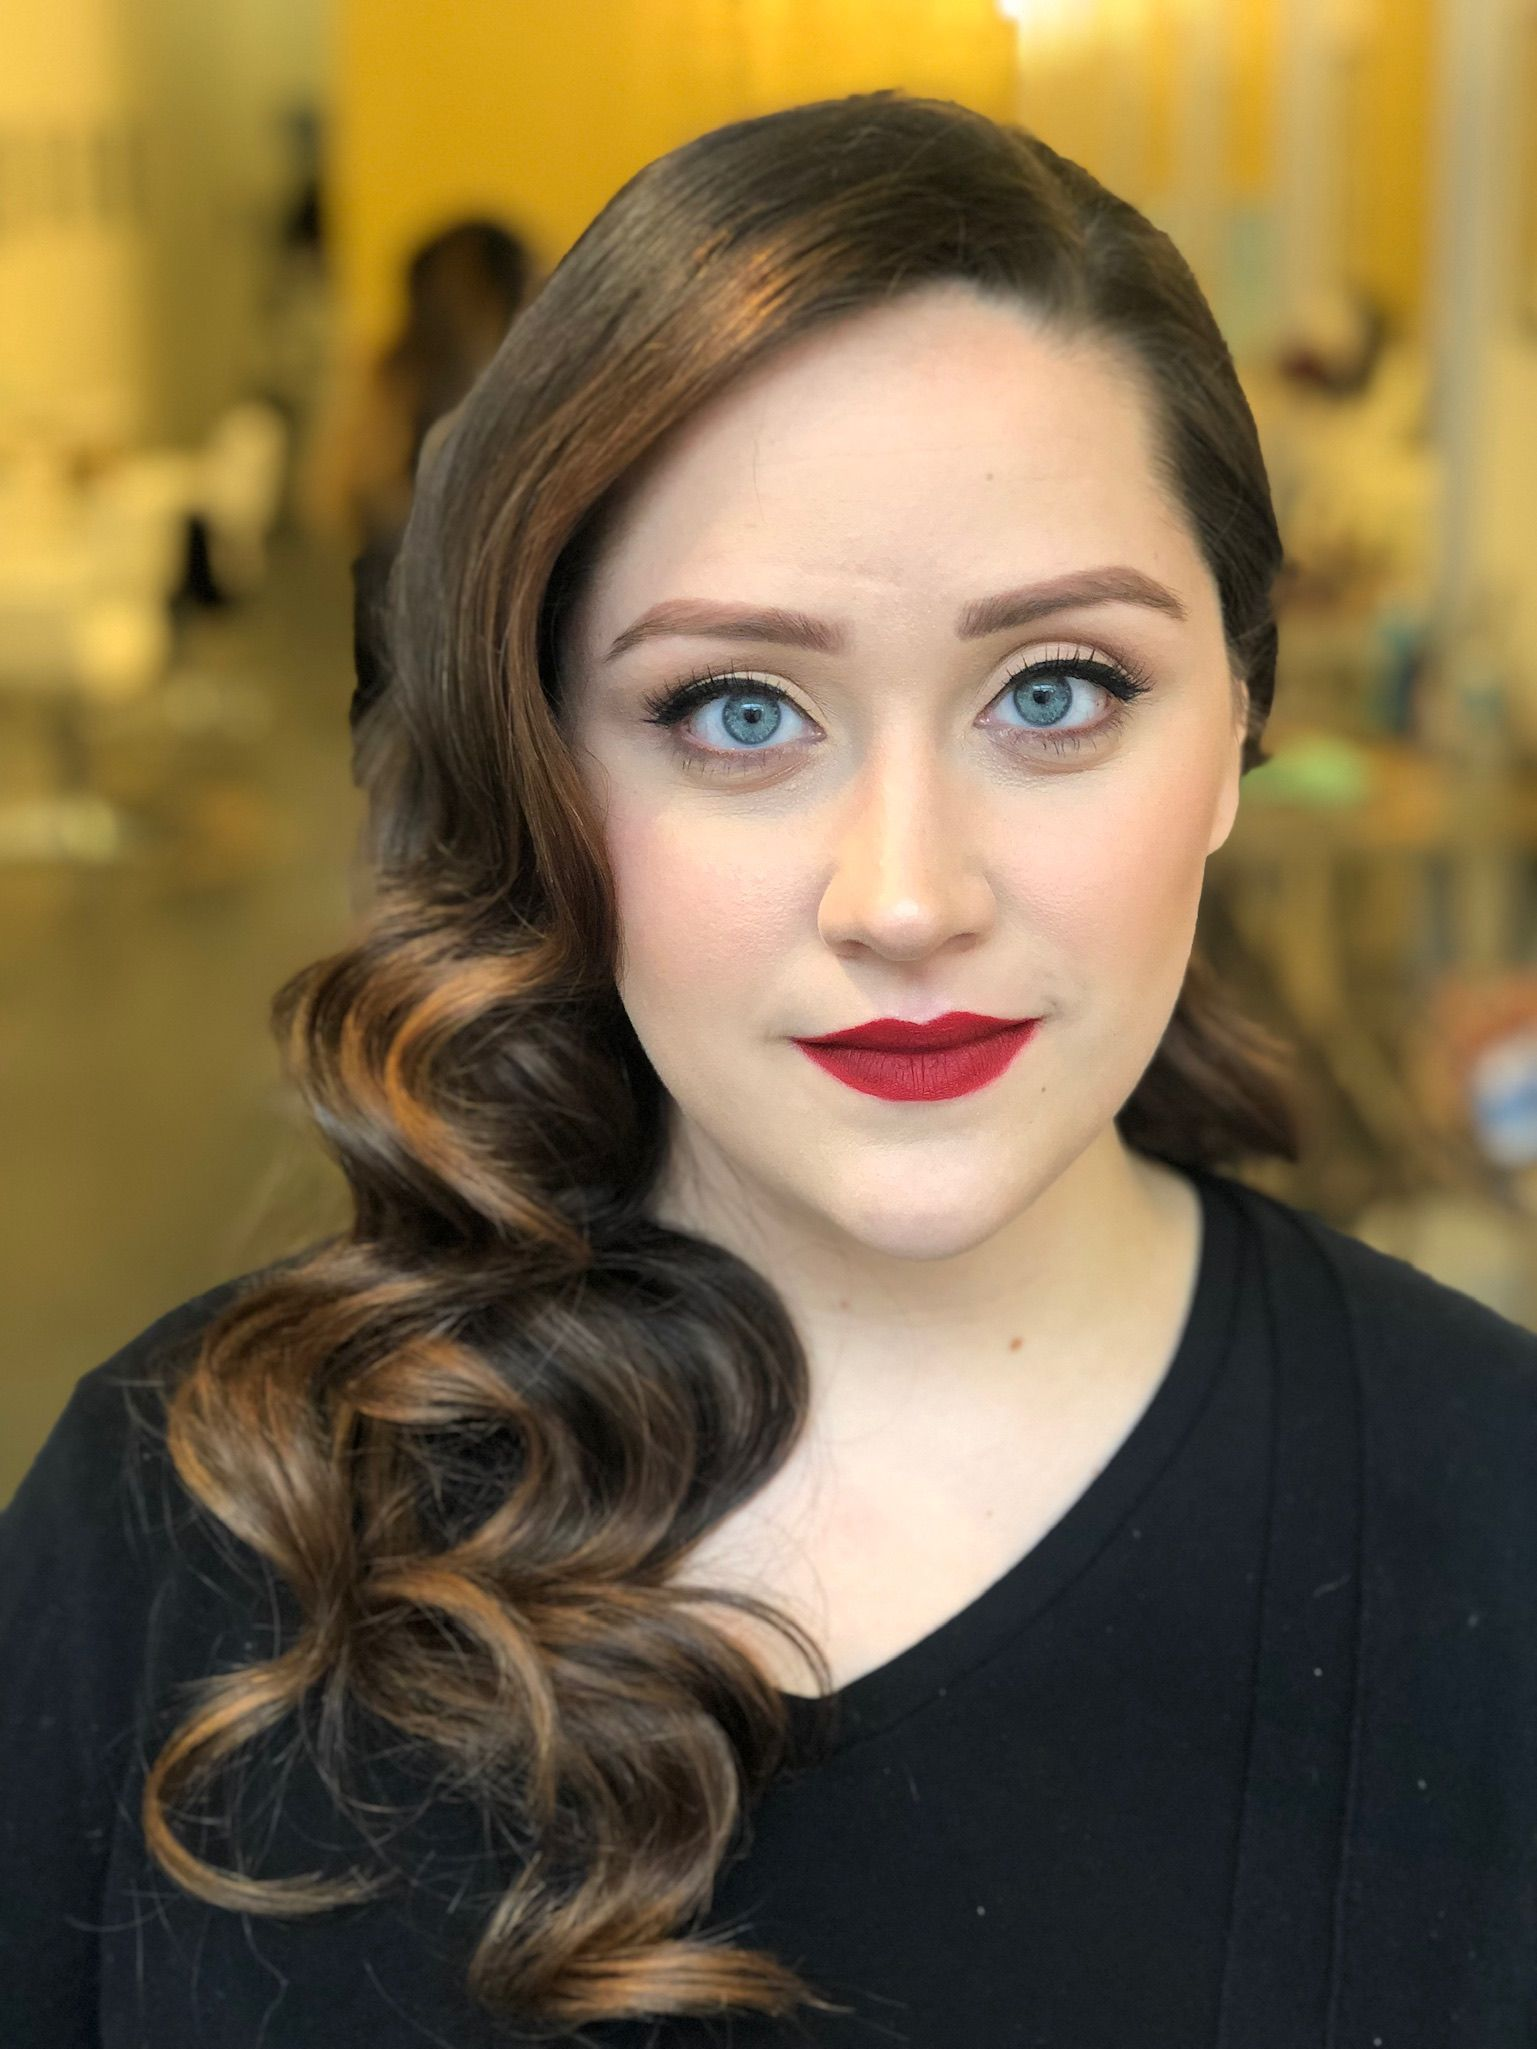 Classic Makeup Hollywood Waves For Prom Hairstyle Makeup By Goldplaited Hollywood Curls Old Hollywood Hair Hollywood Hair